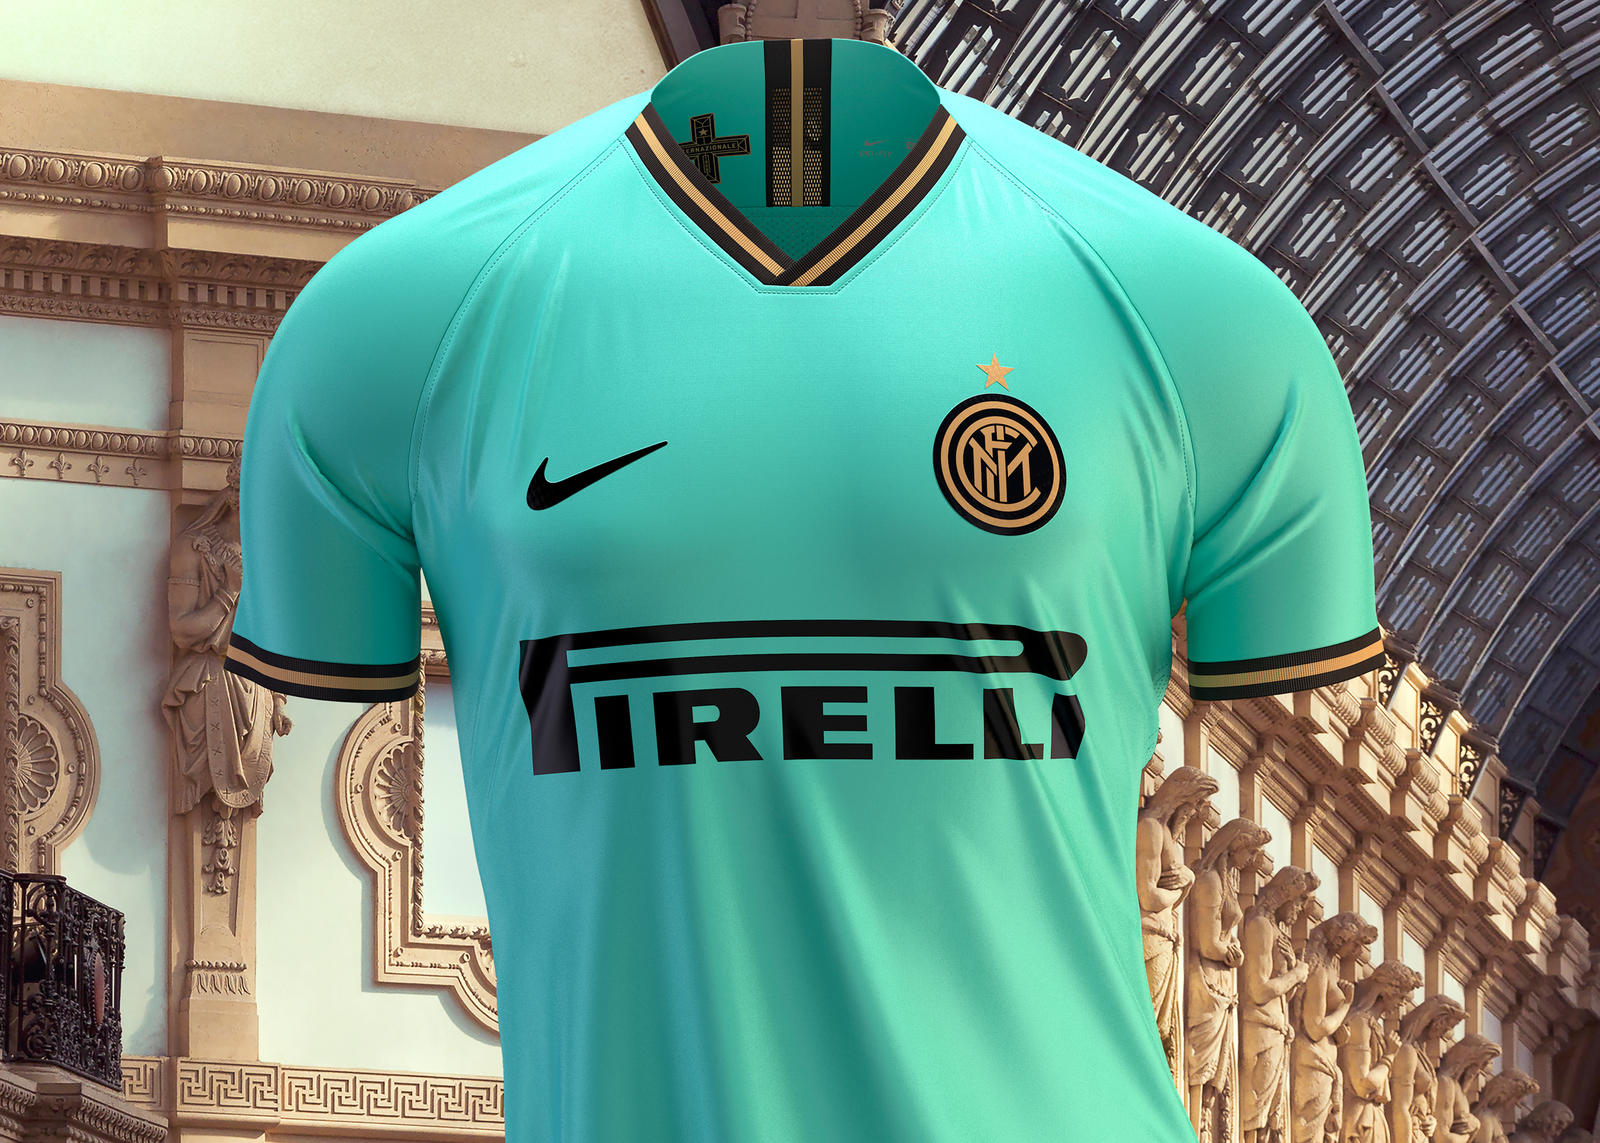 d1012bcbd Inter Milan has arguably just released the most beautiful kit of the  upcoming 2019-20 season! I can't say I follow any particular team in  Italy's Serie A so ...